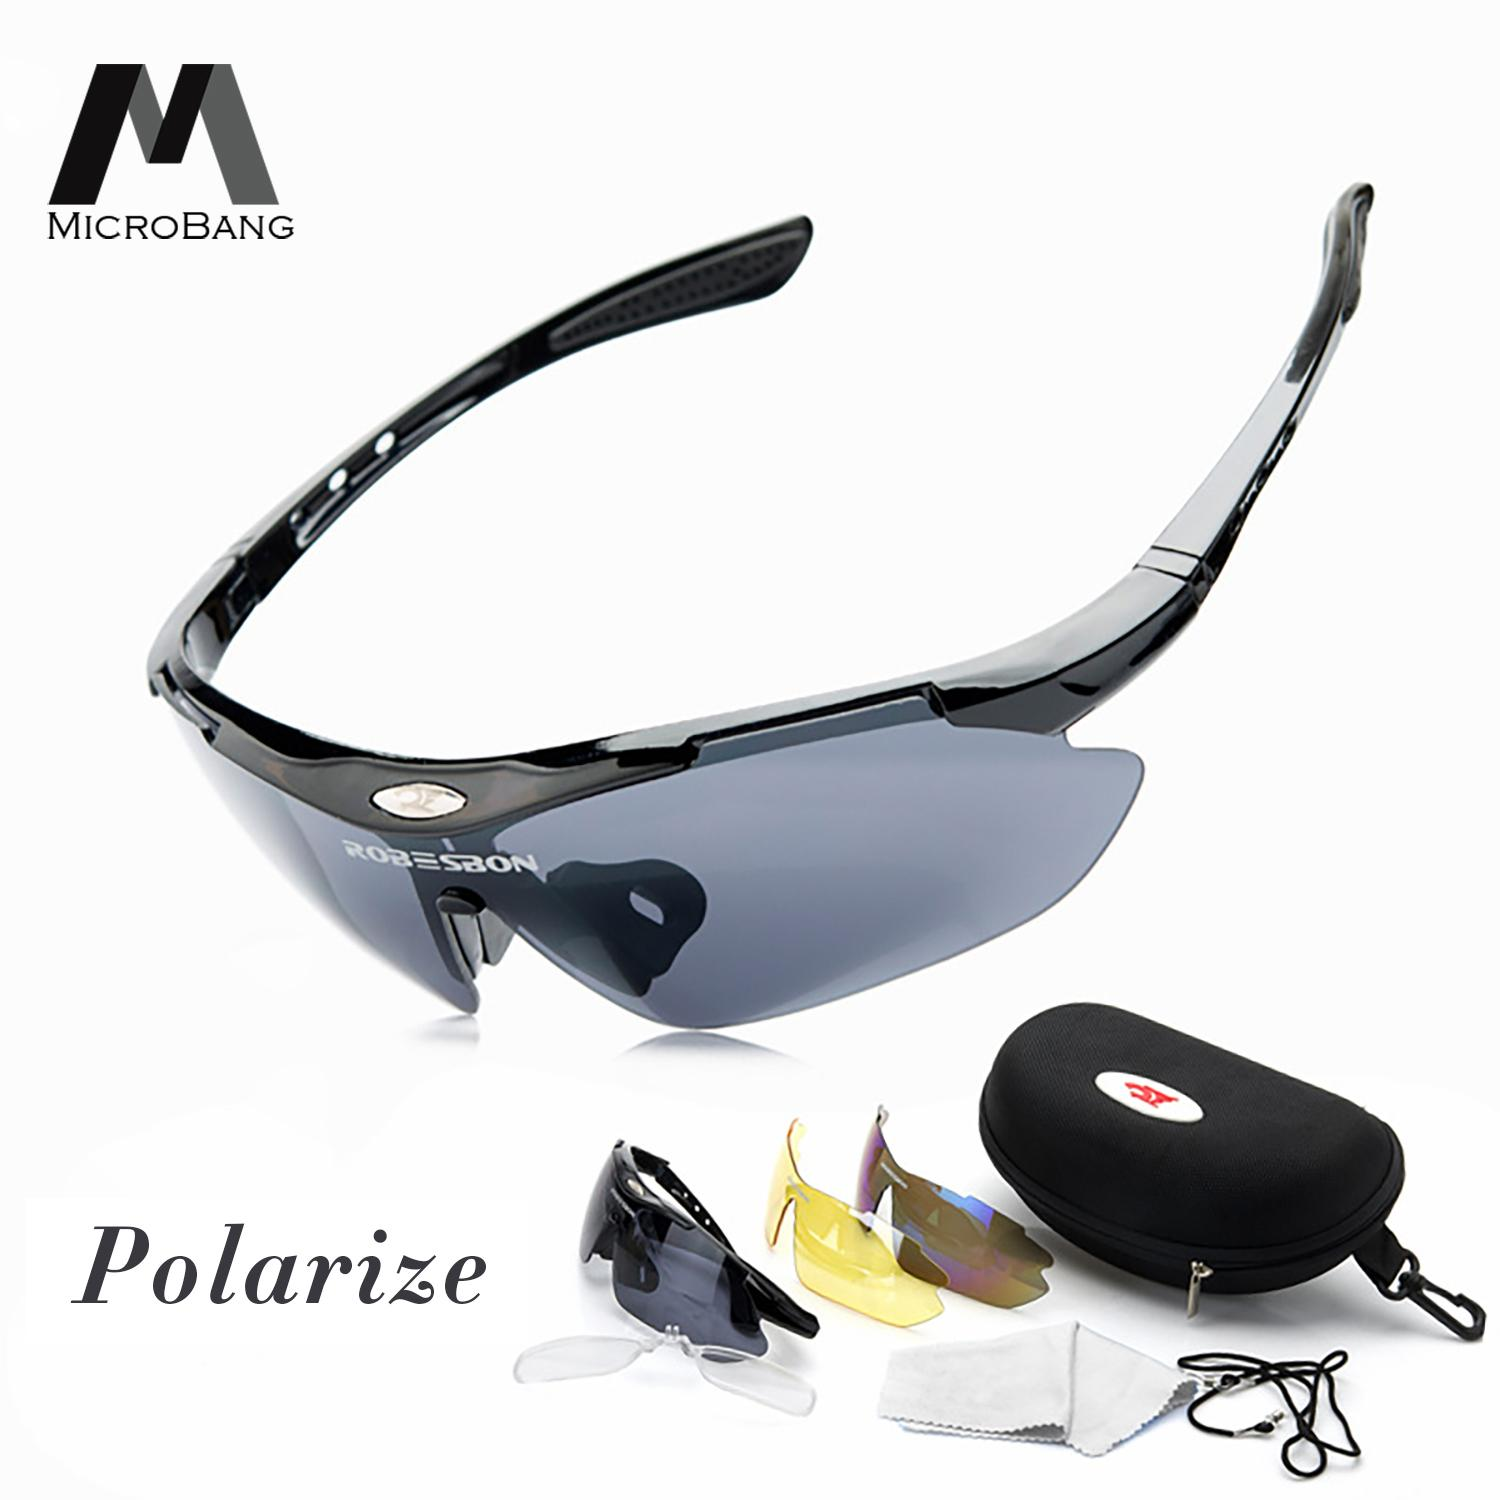 f34a56bf31df MicroBang Polarize Sports Cycling Sunglasses for Men Women Cycling Riding  Running Glasses with 3 Interchangeable Lenses